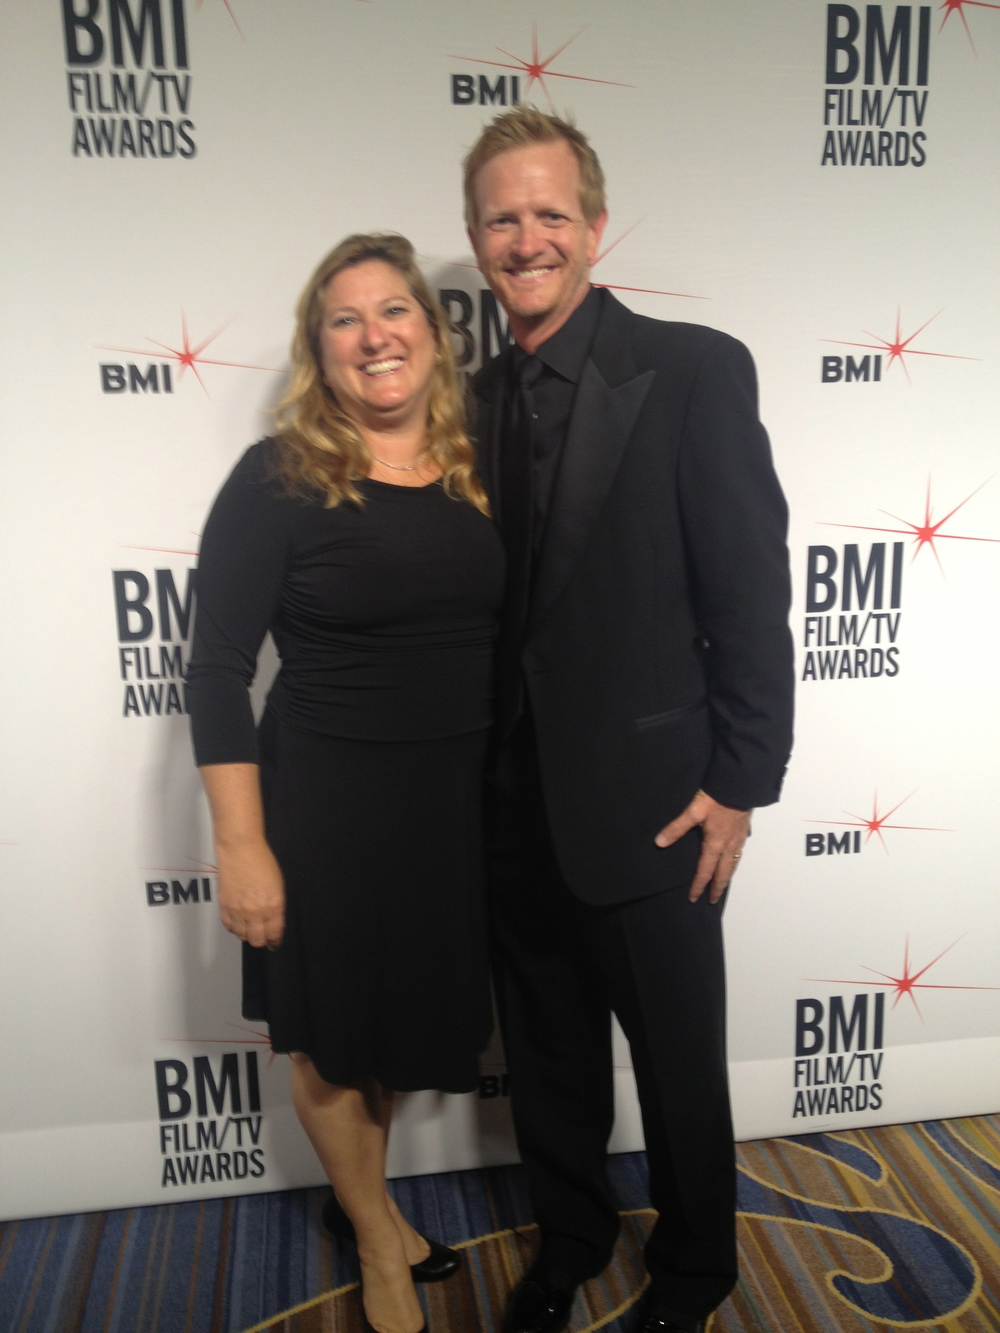 BMI Film and TV Awards